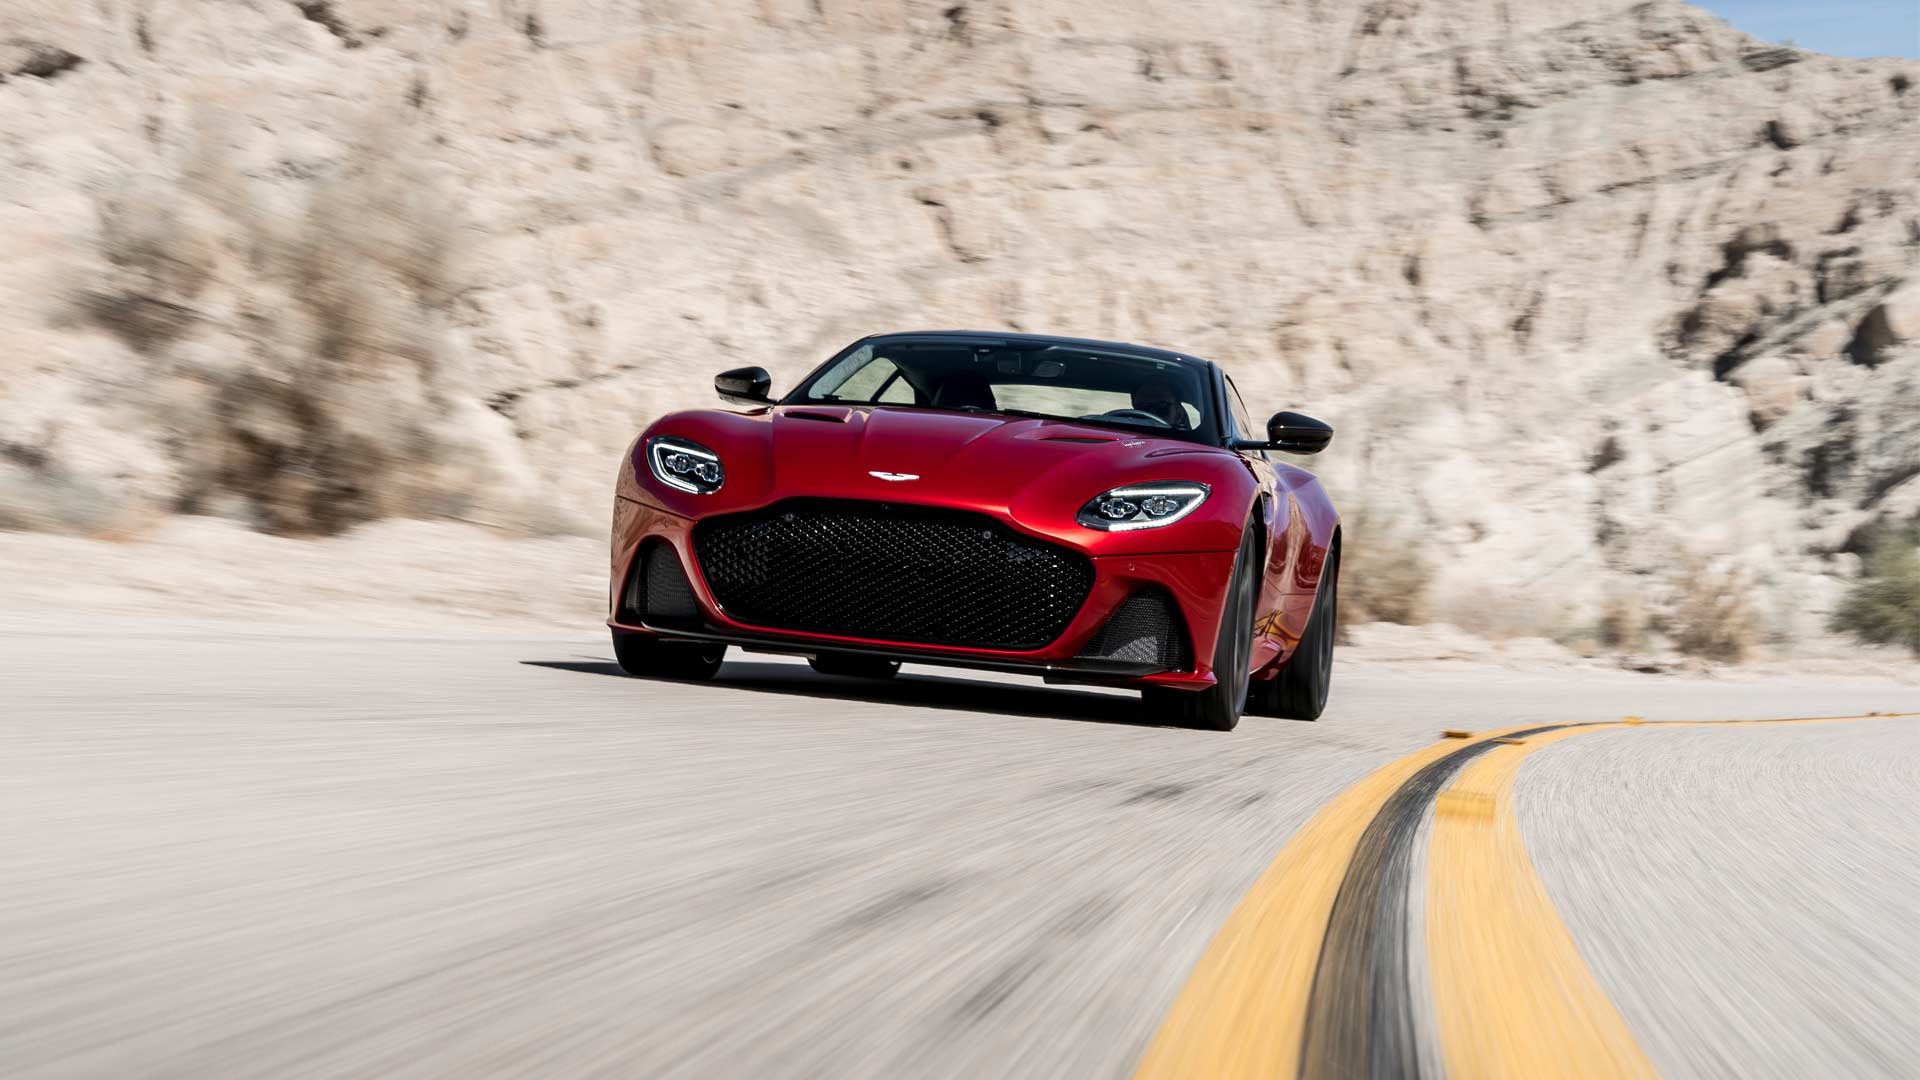 2018-Aston-Martin-DBS-Superleggera